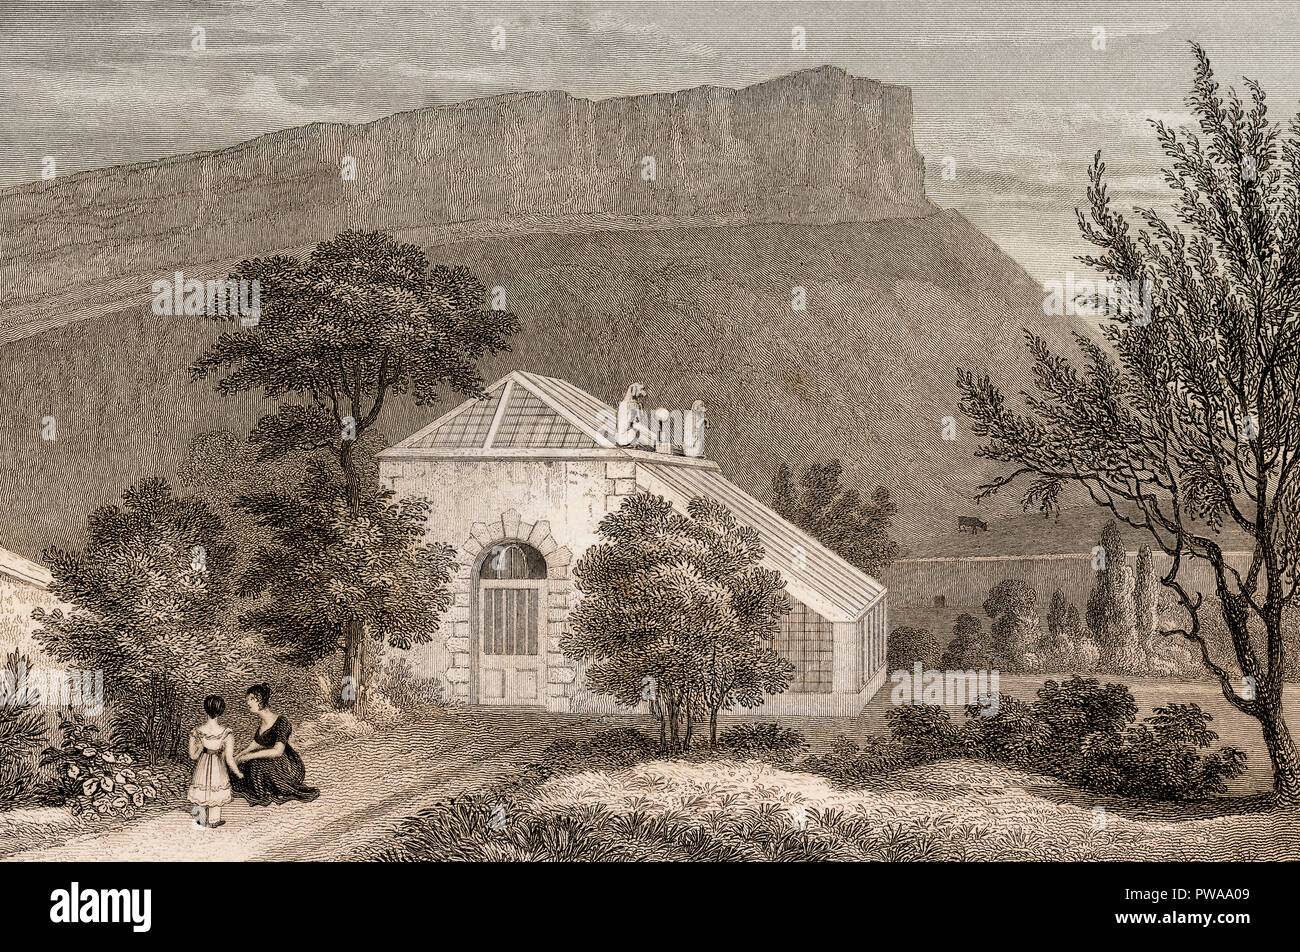 A Summer-house in Regent Murray's Garden, Canongate, Edinburgh, Scotland, 19th century, from Modern Athens by Th. H. Shepherd - Stock Image